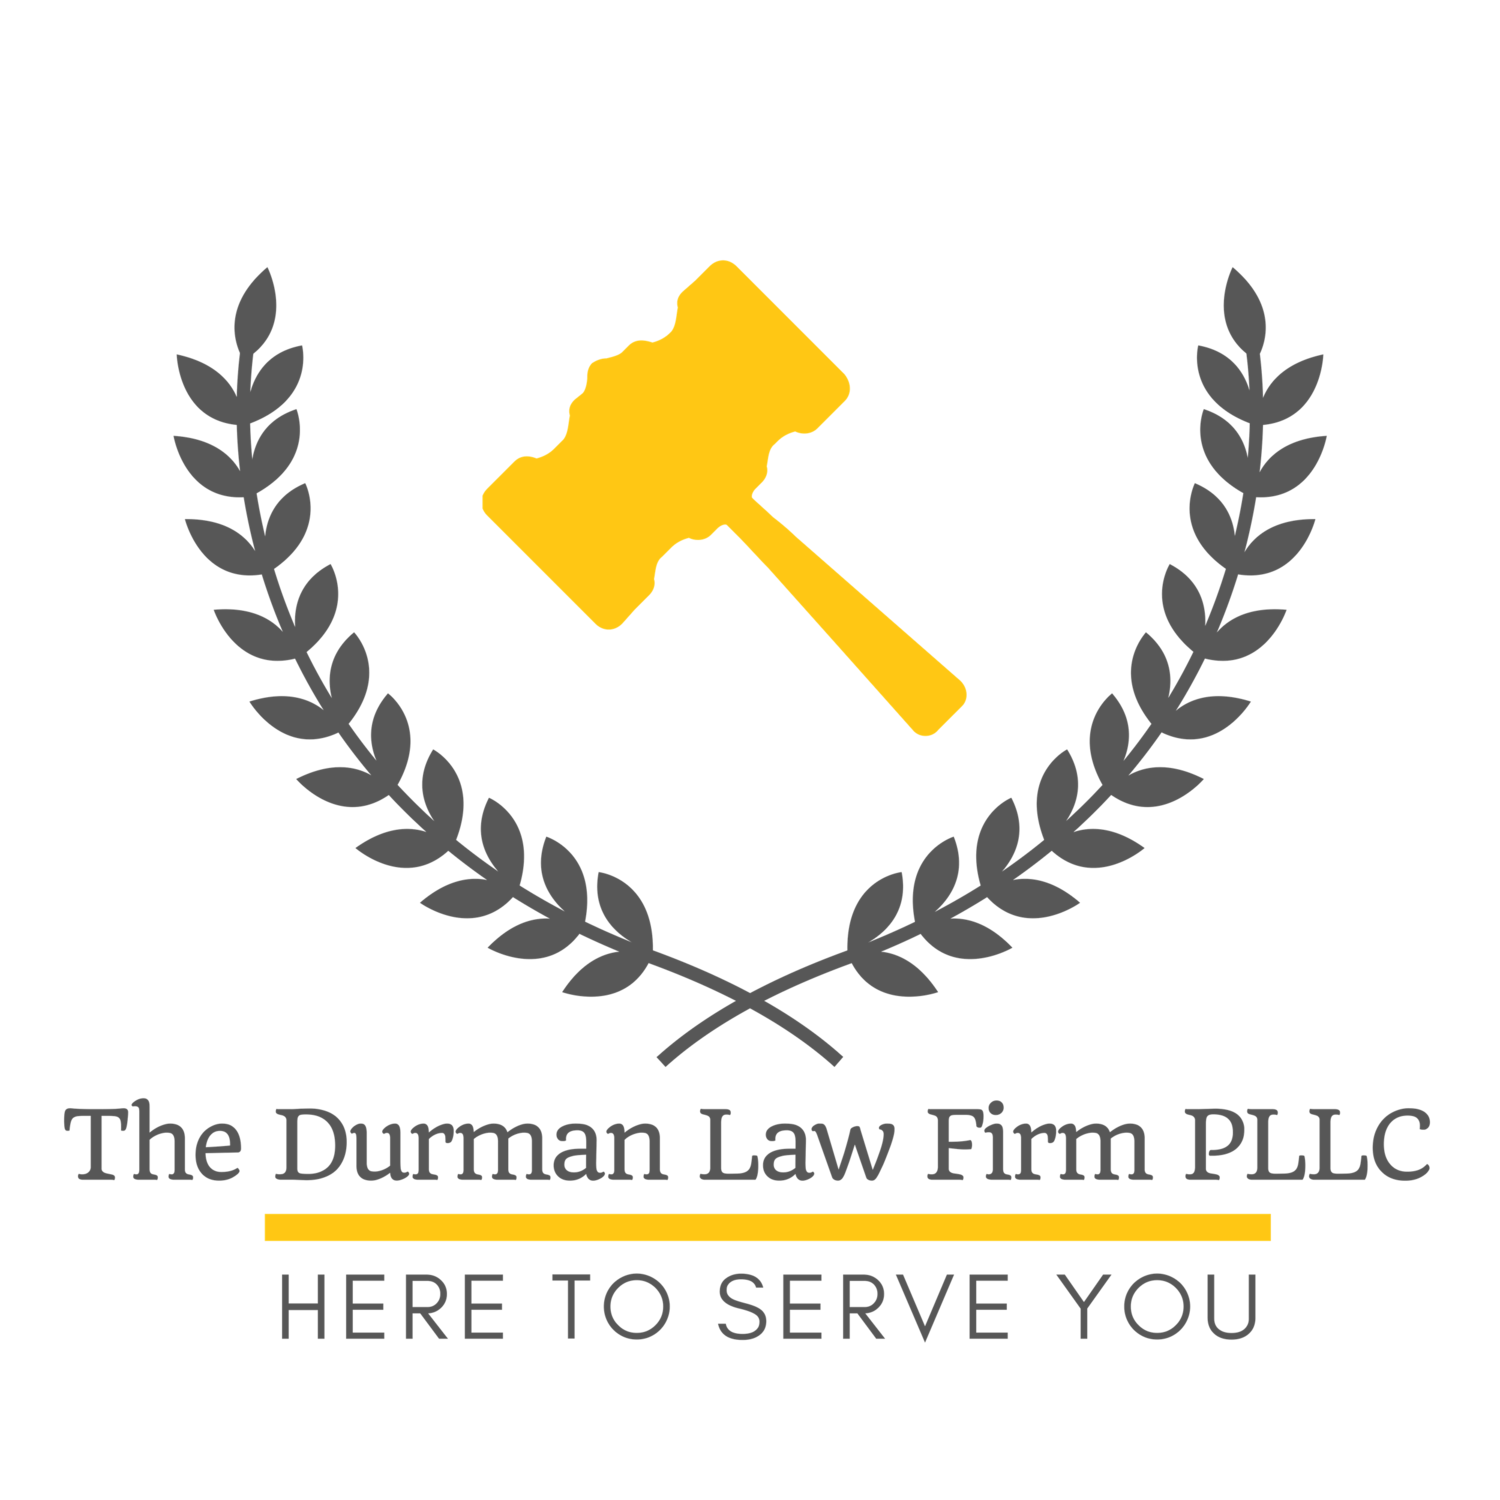 The Durman Law Firm PLLC